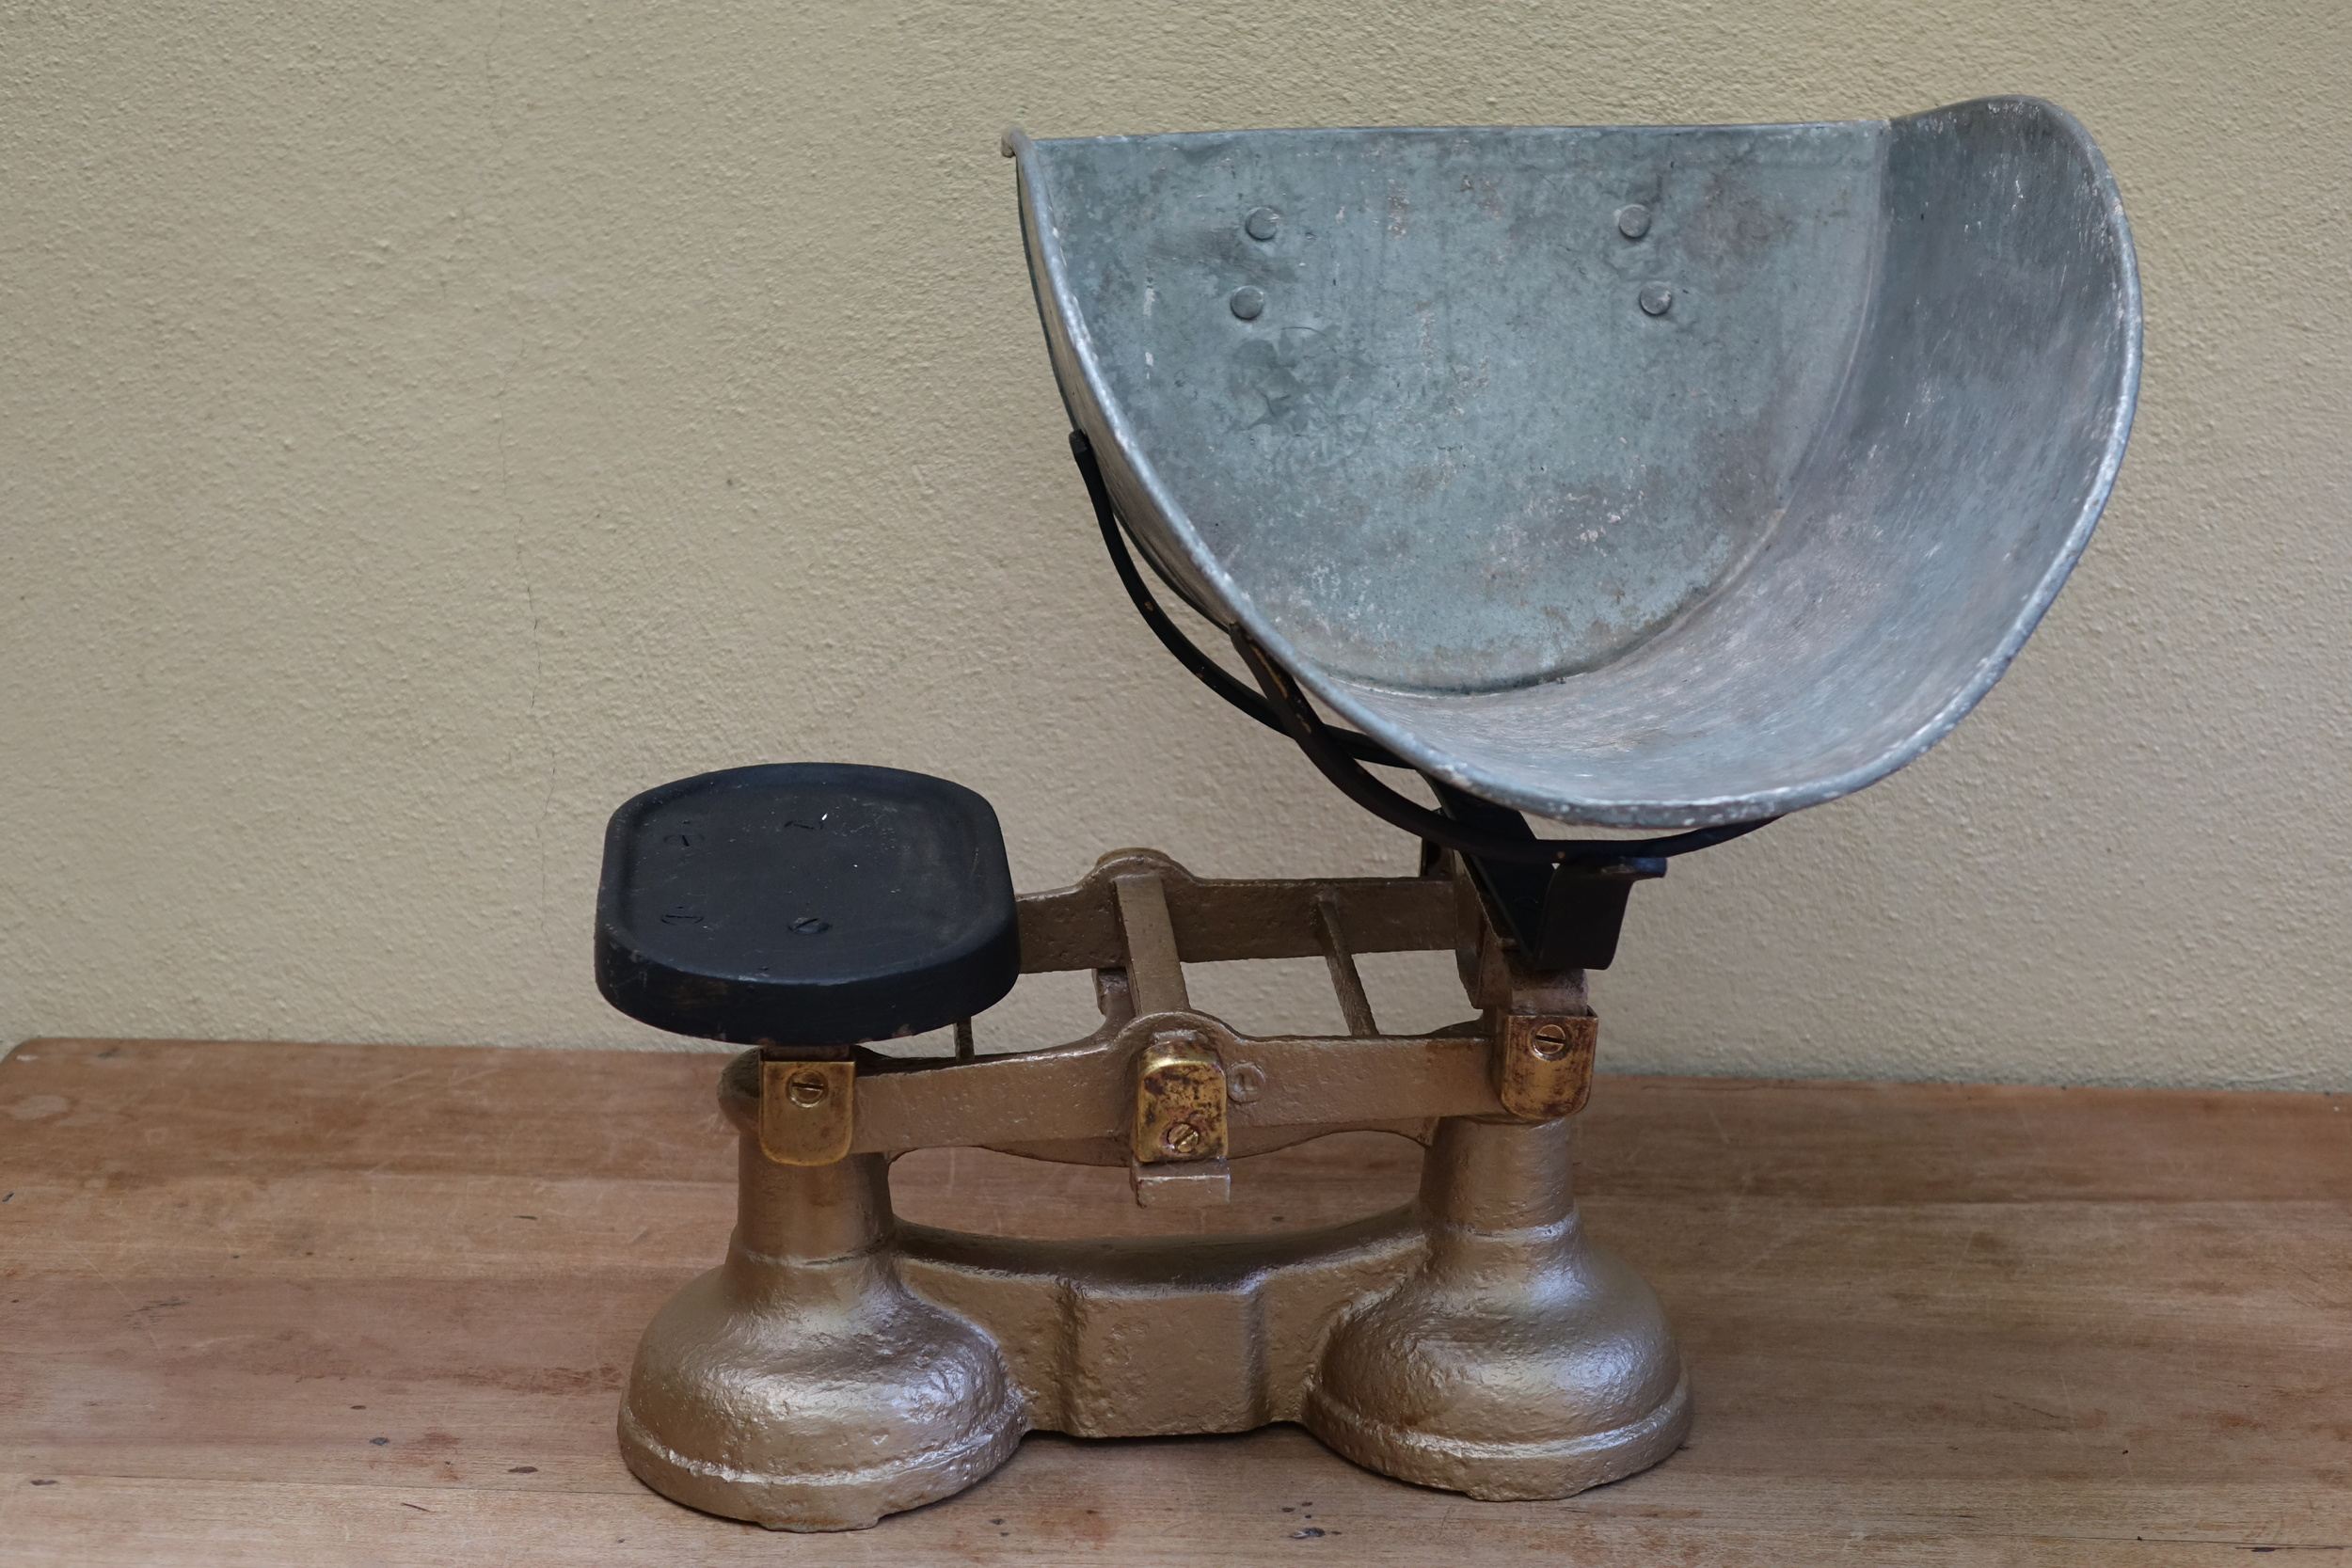 Vintage Grocers Potato Scales £5